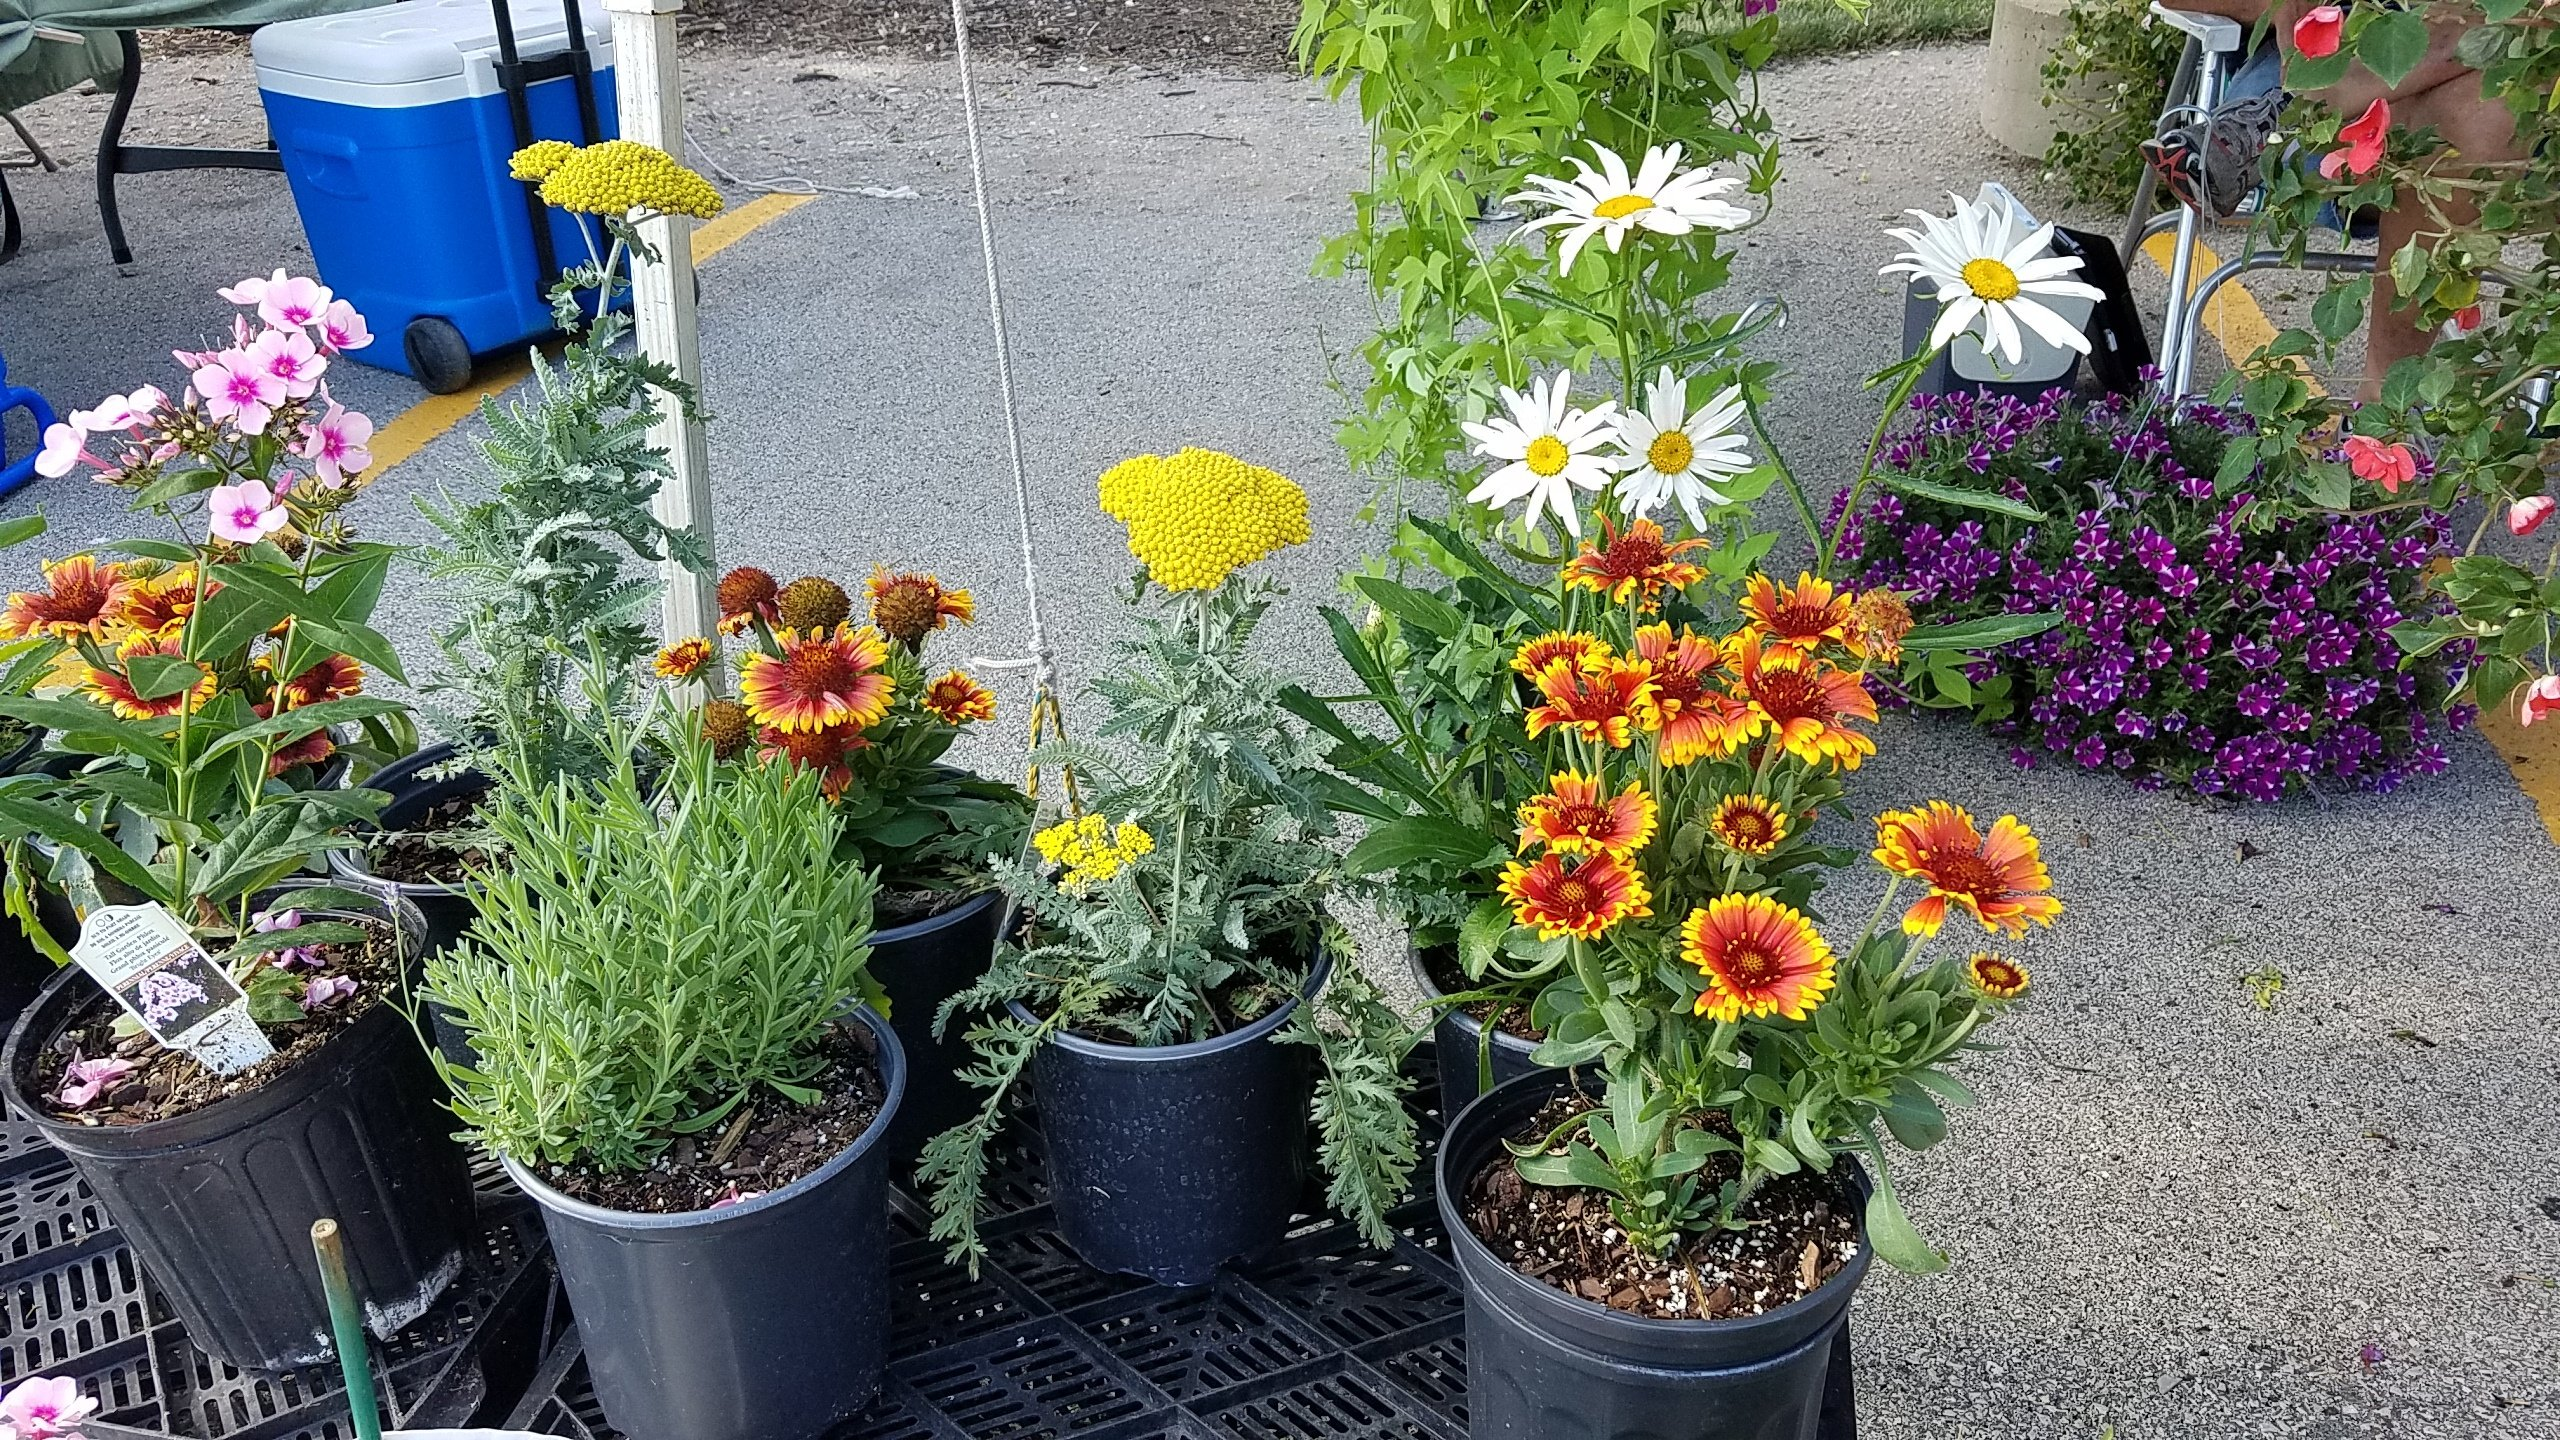 8 great finds at the jjc farmers market joliet junior college sunset growers flowers